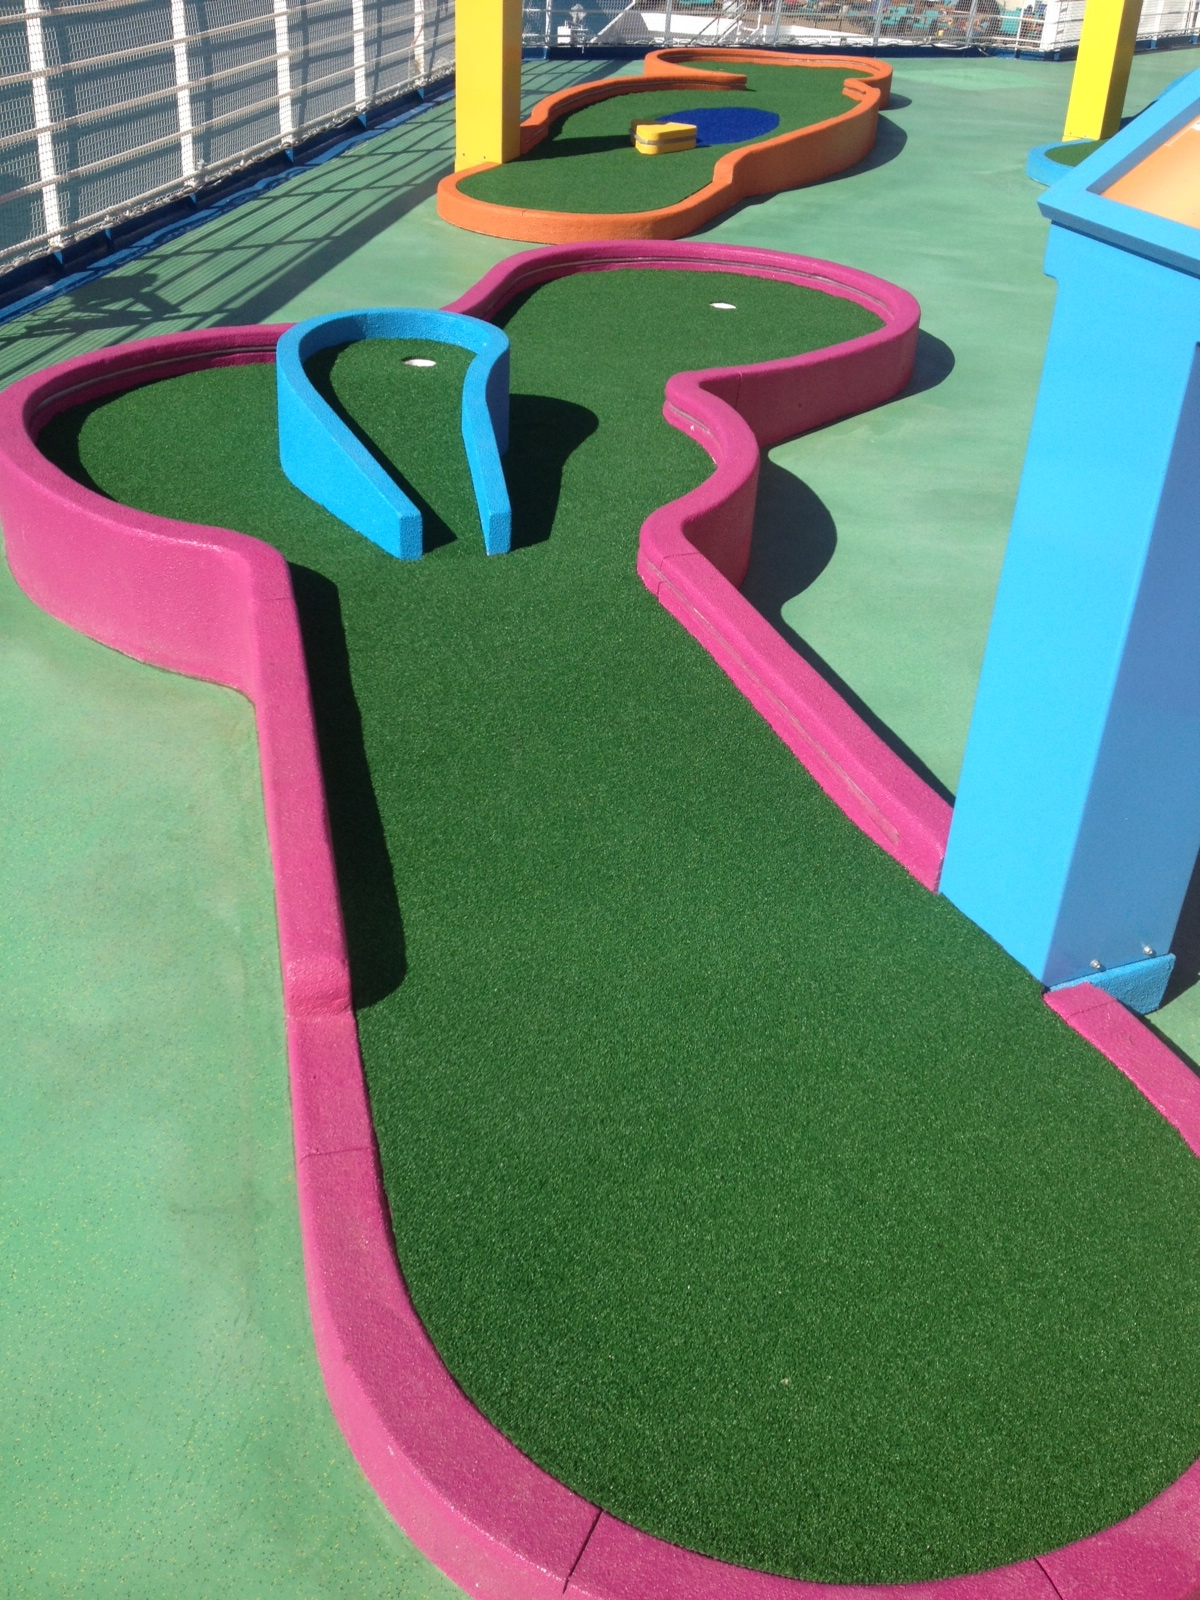 Southwest Greens Installs Mini Golf Course On Carnival Sunshine Artificial Grass Amp Turf